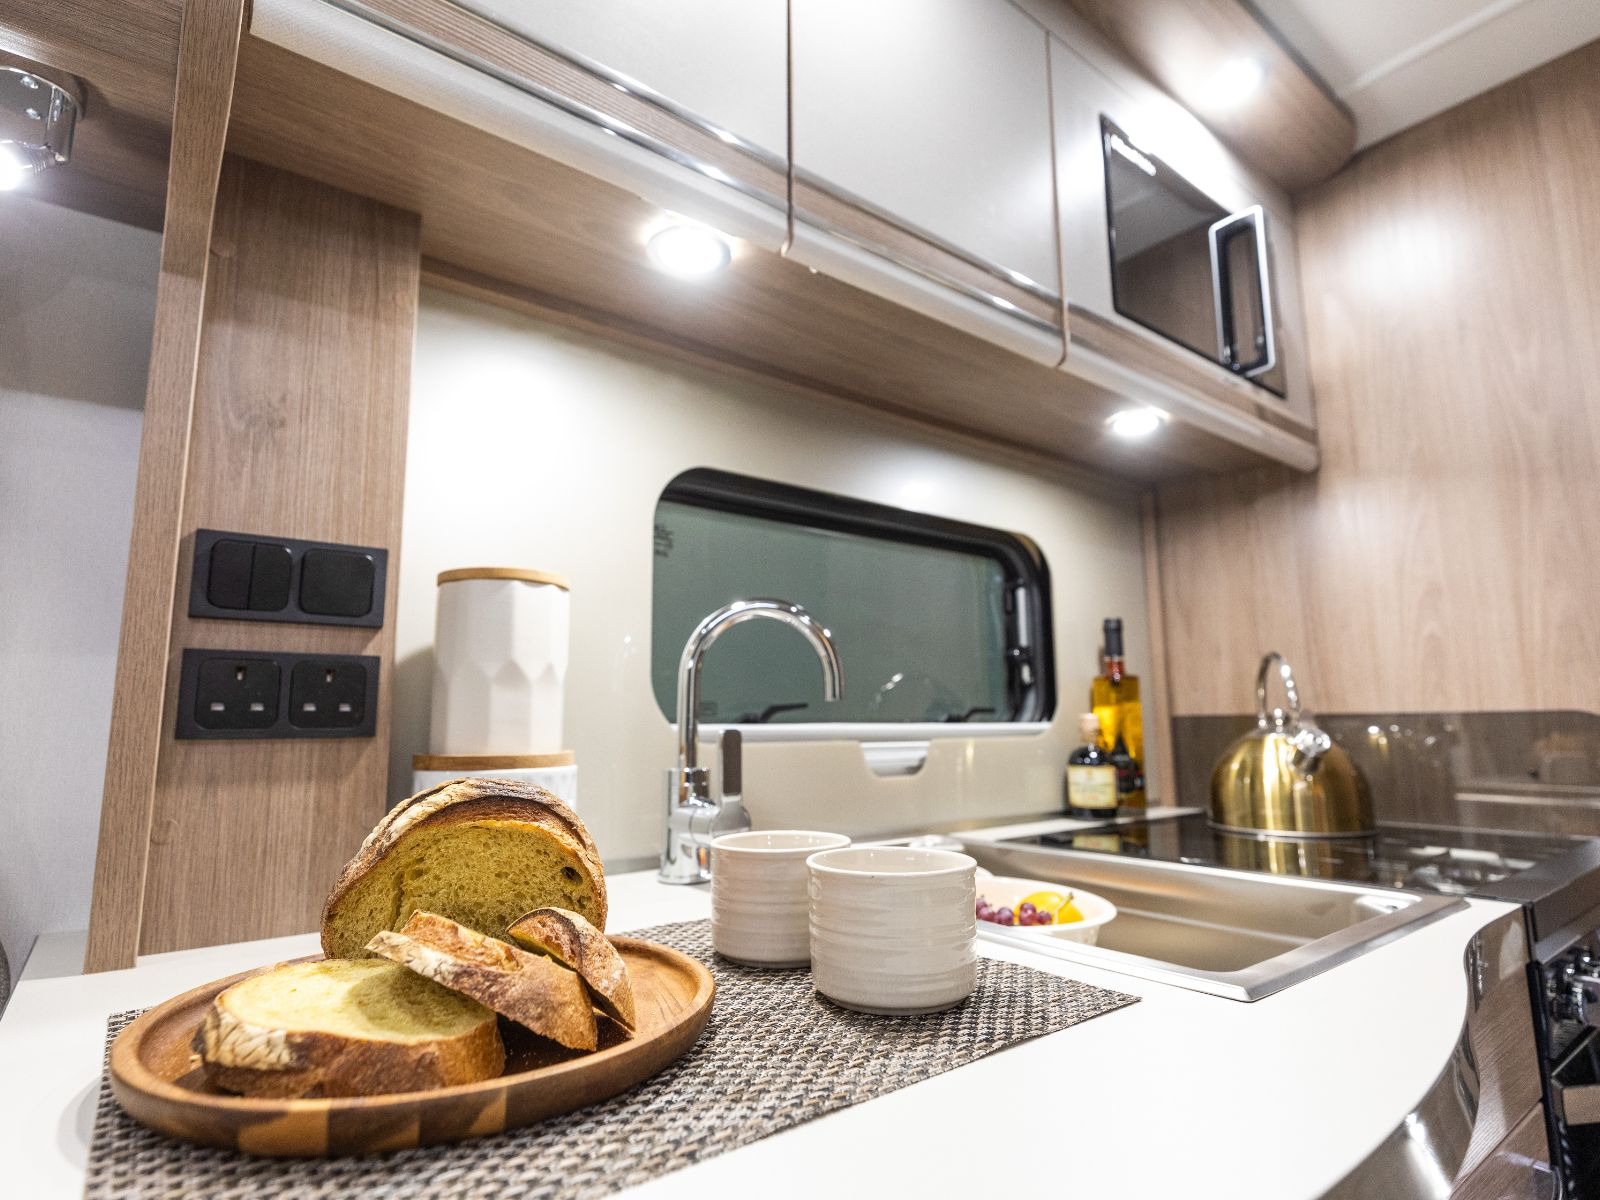 Bread resting on counter and view of overhead storage and microwave in kitchen'